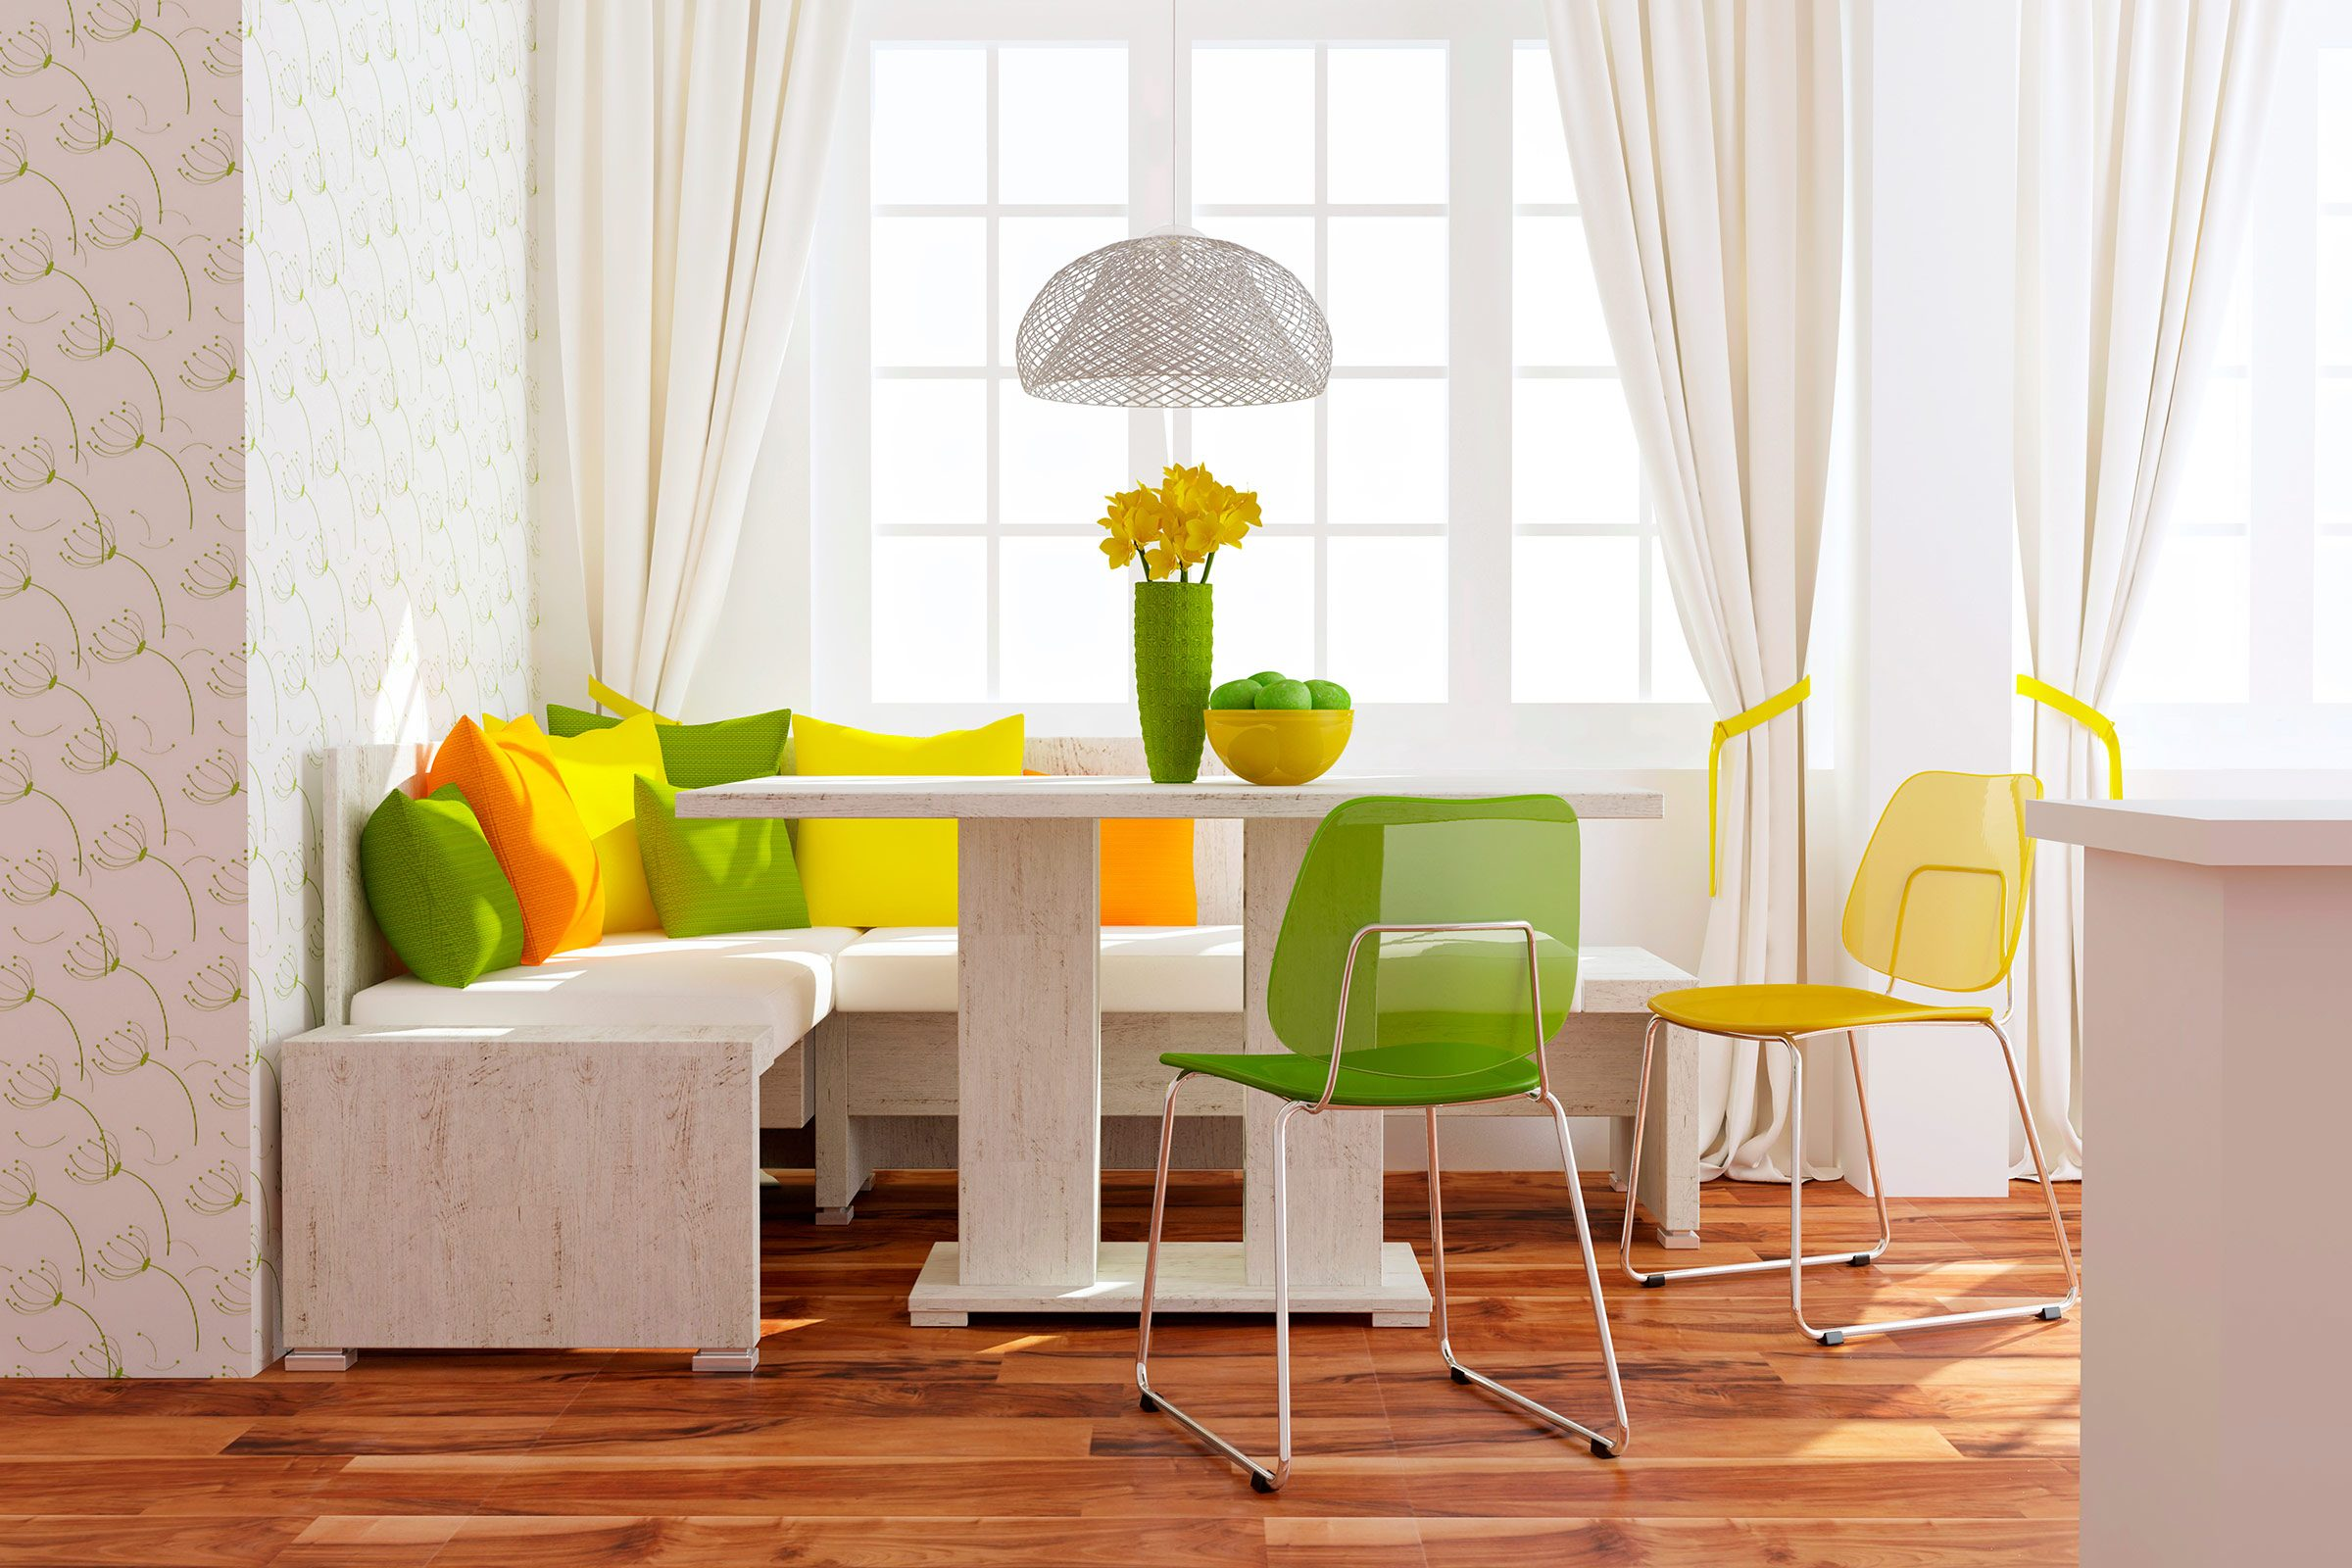 Living Room Design Colors The Abcs Of Color 7 Color Psychology Tips For Your Home